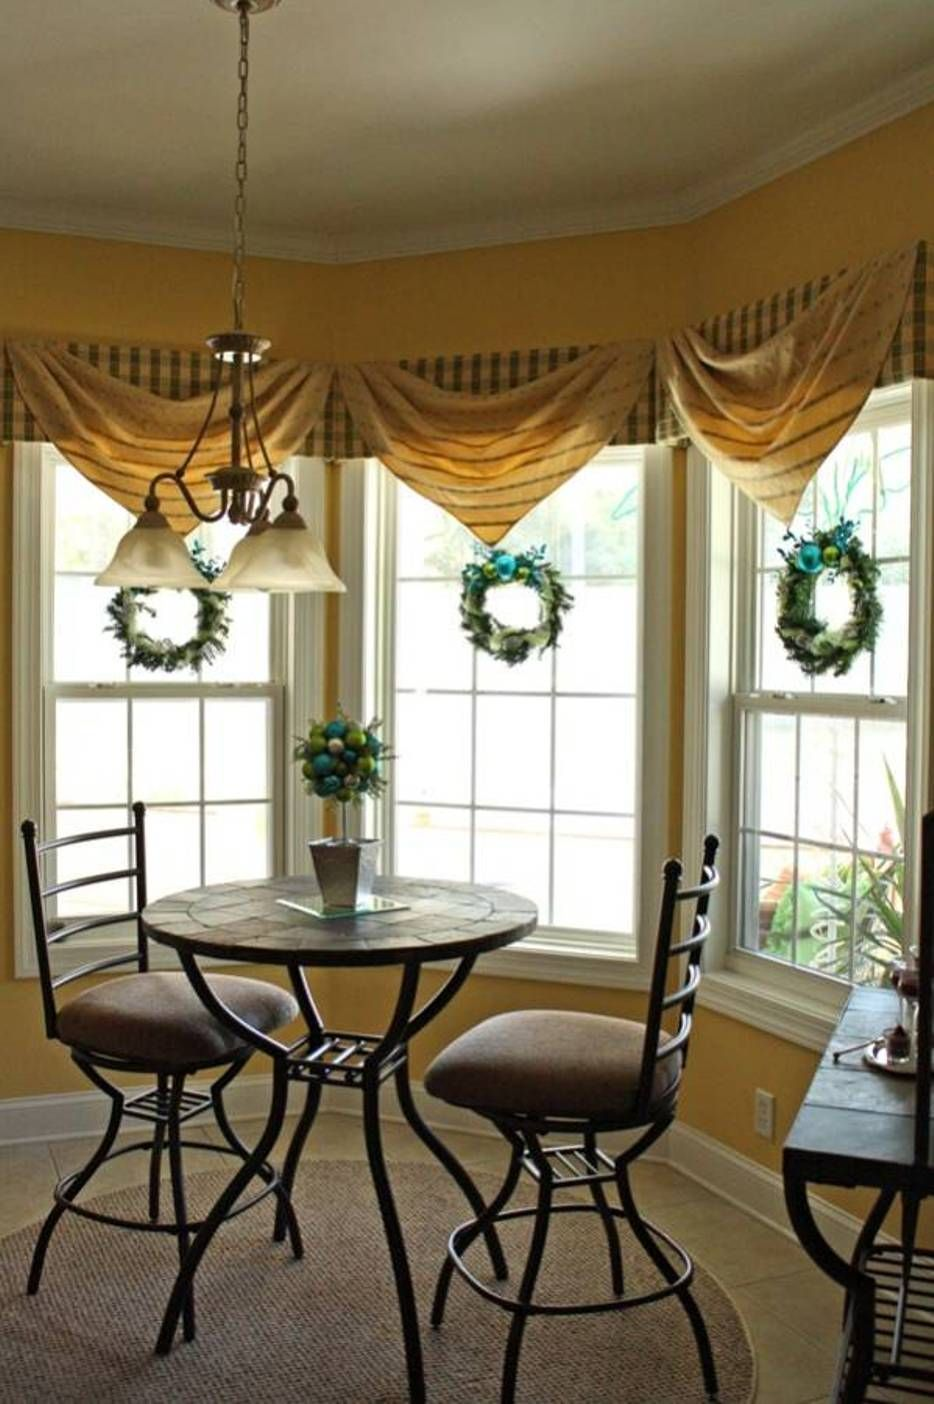 Home Design And Decor Best Window Treatments For Bay Windows Window Treatments For Bay Windows With Plaid Valances And Dining Room Makeover Home Decor Home